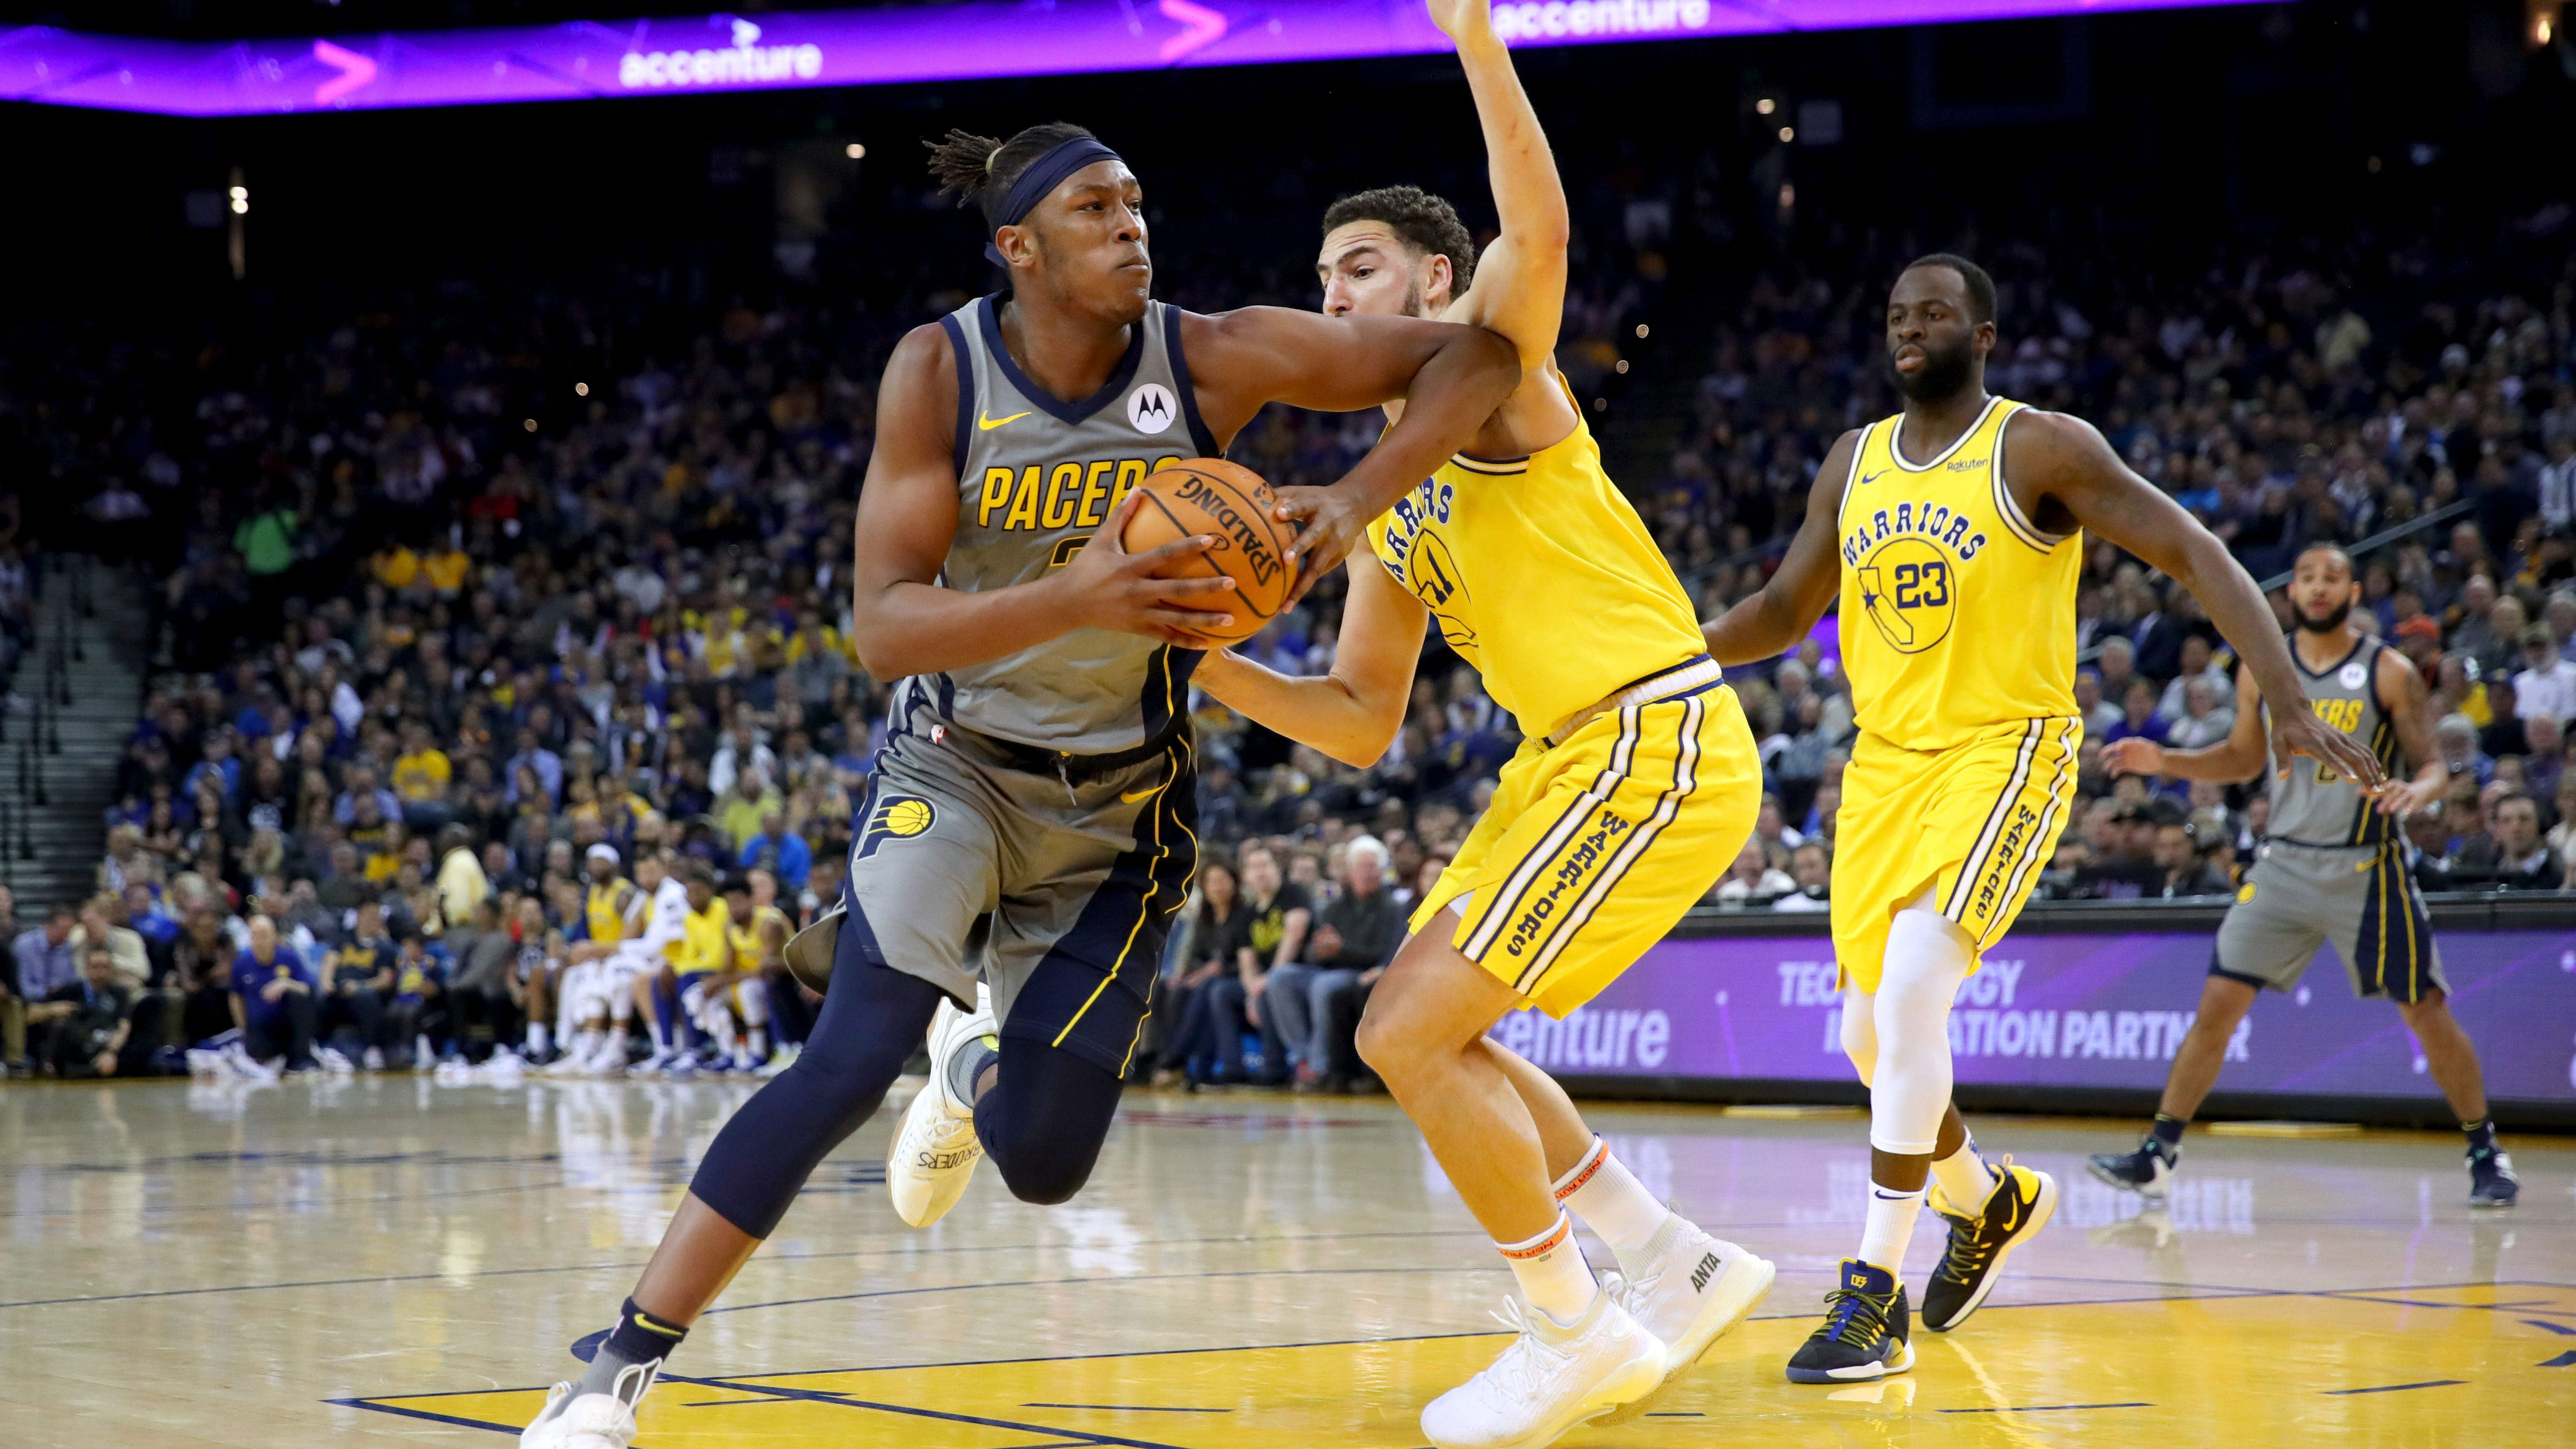 Pacers overmatched by Warriors in 112-89 loss  b70387942836